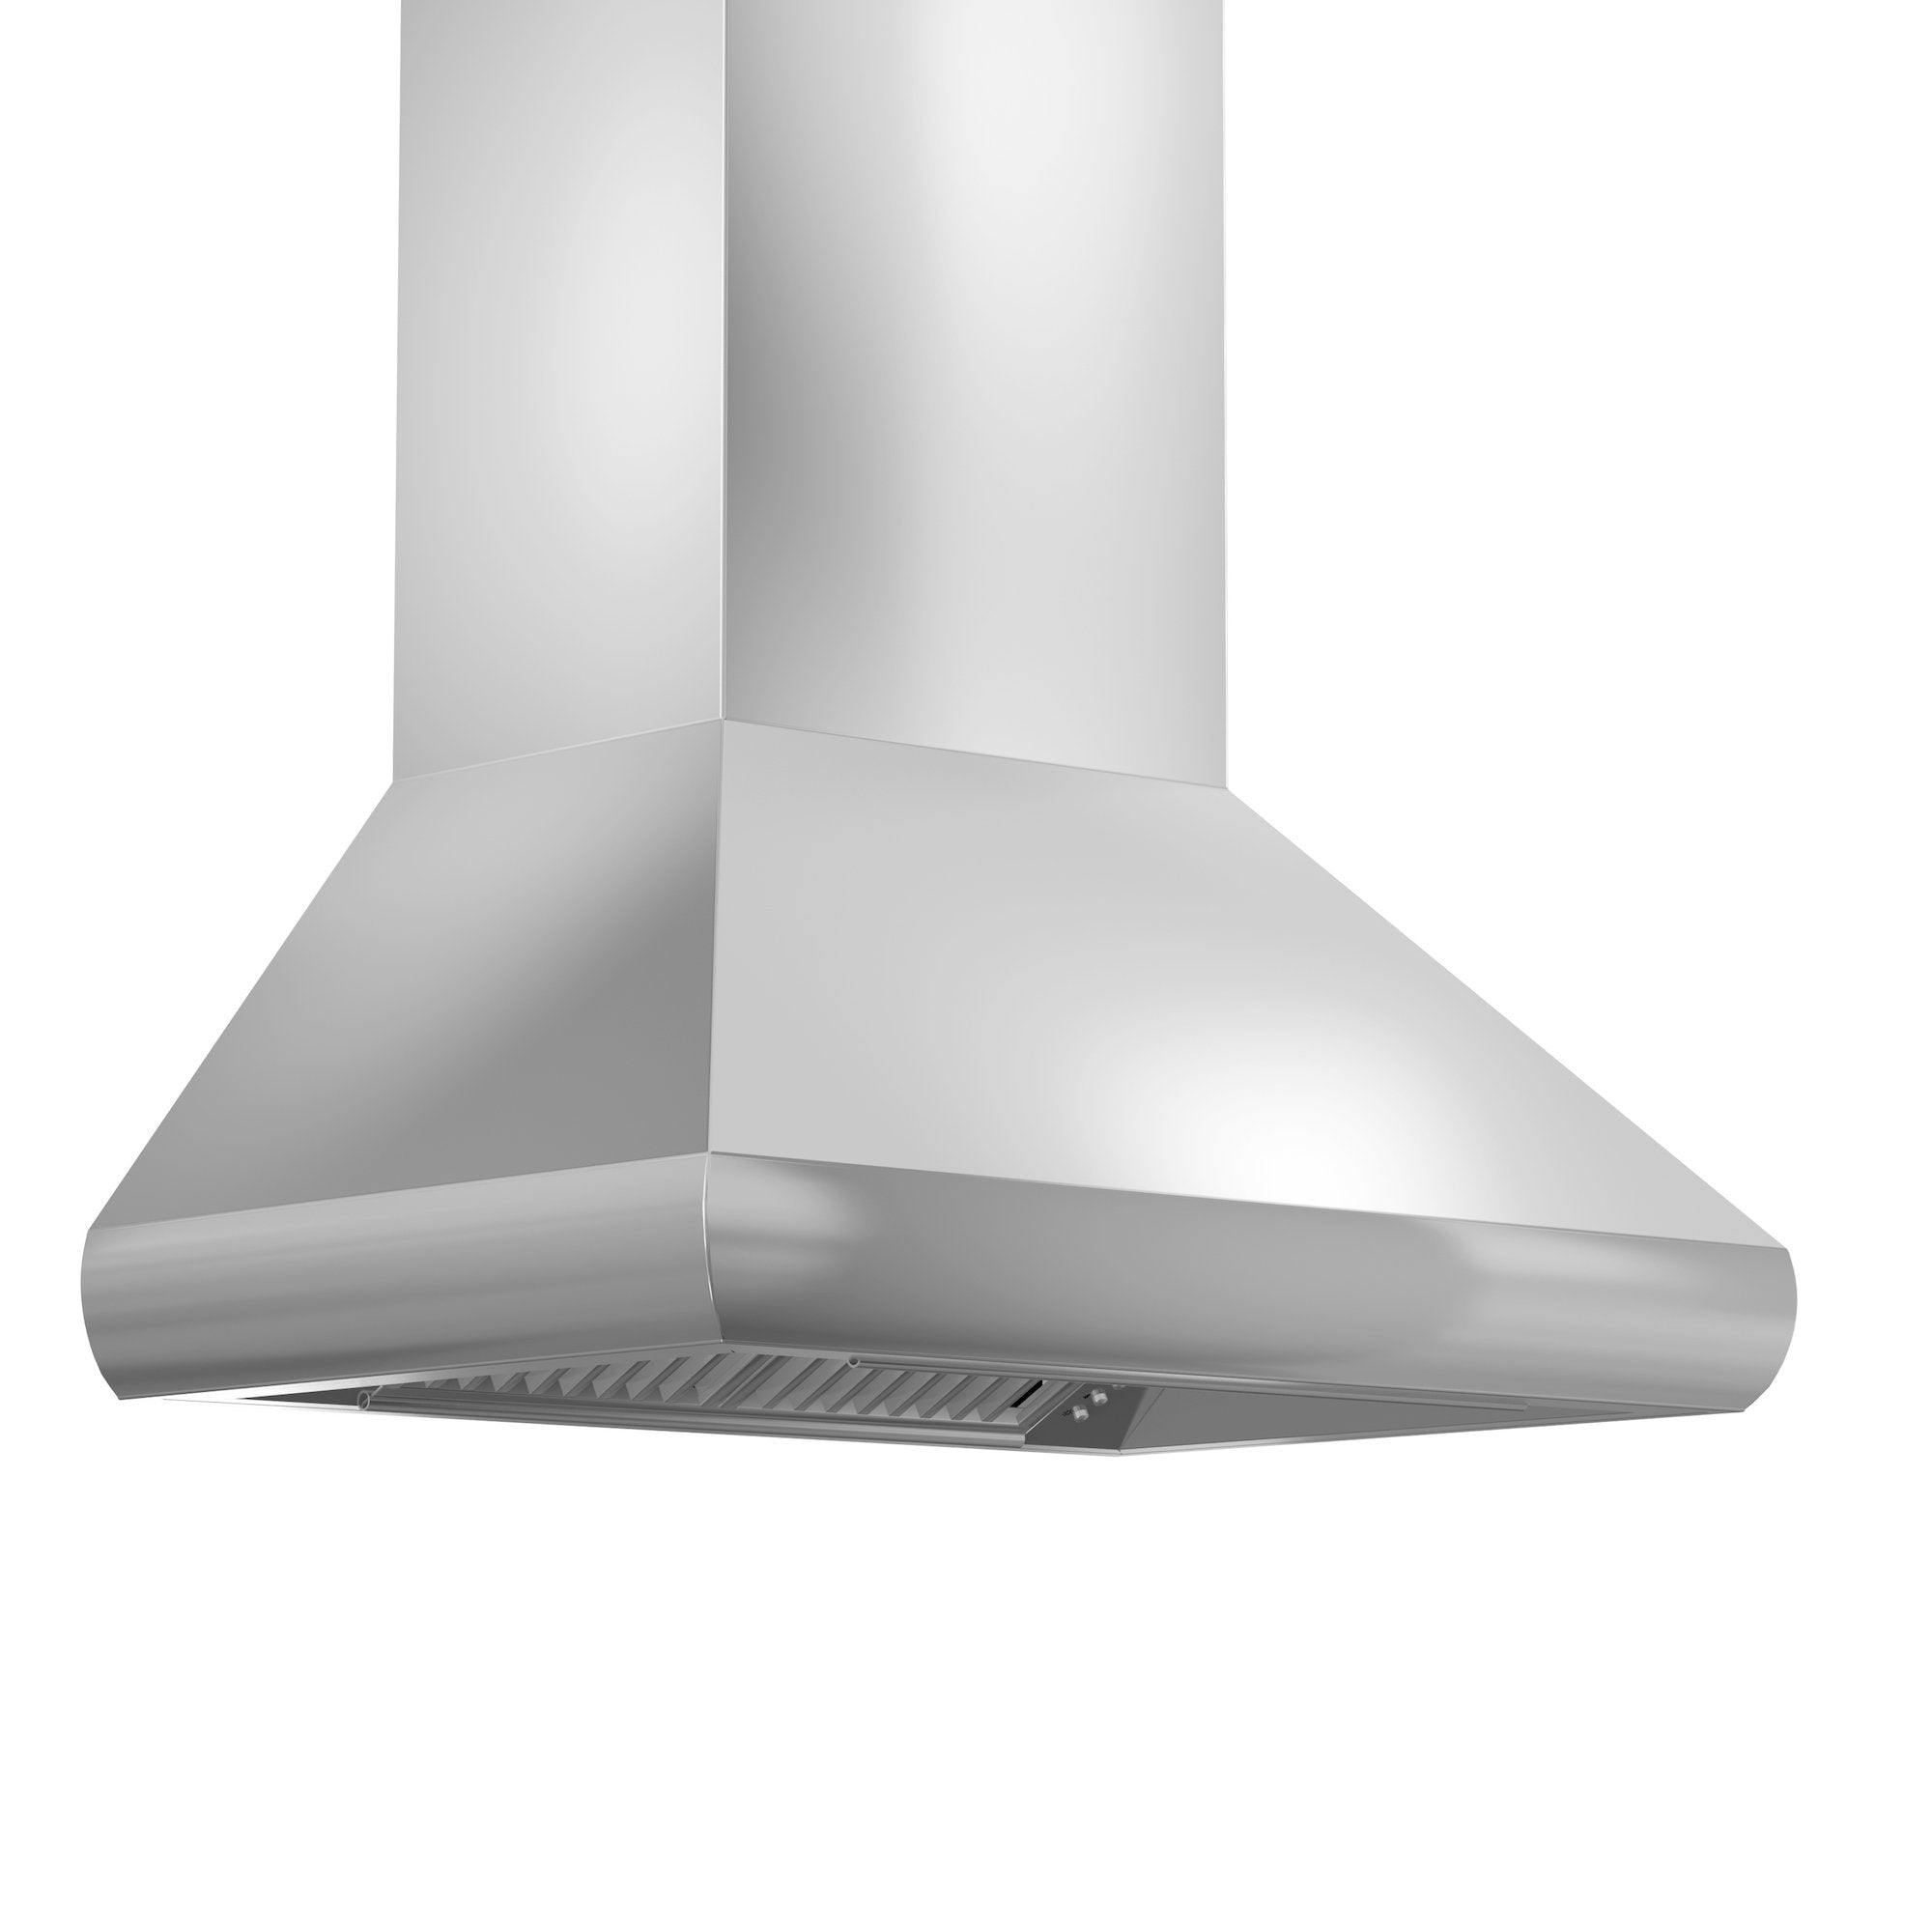 ZLINE Wall Mount Range Hood in Stainless Steel - Includes Remote Blower (687-RD/RS)